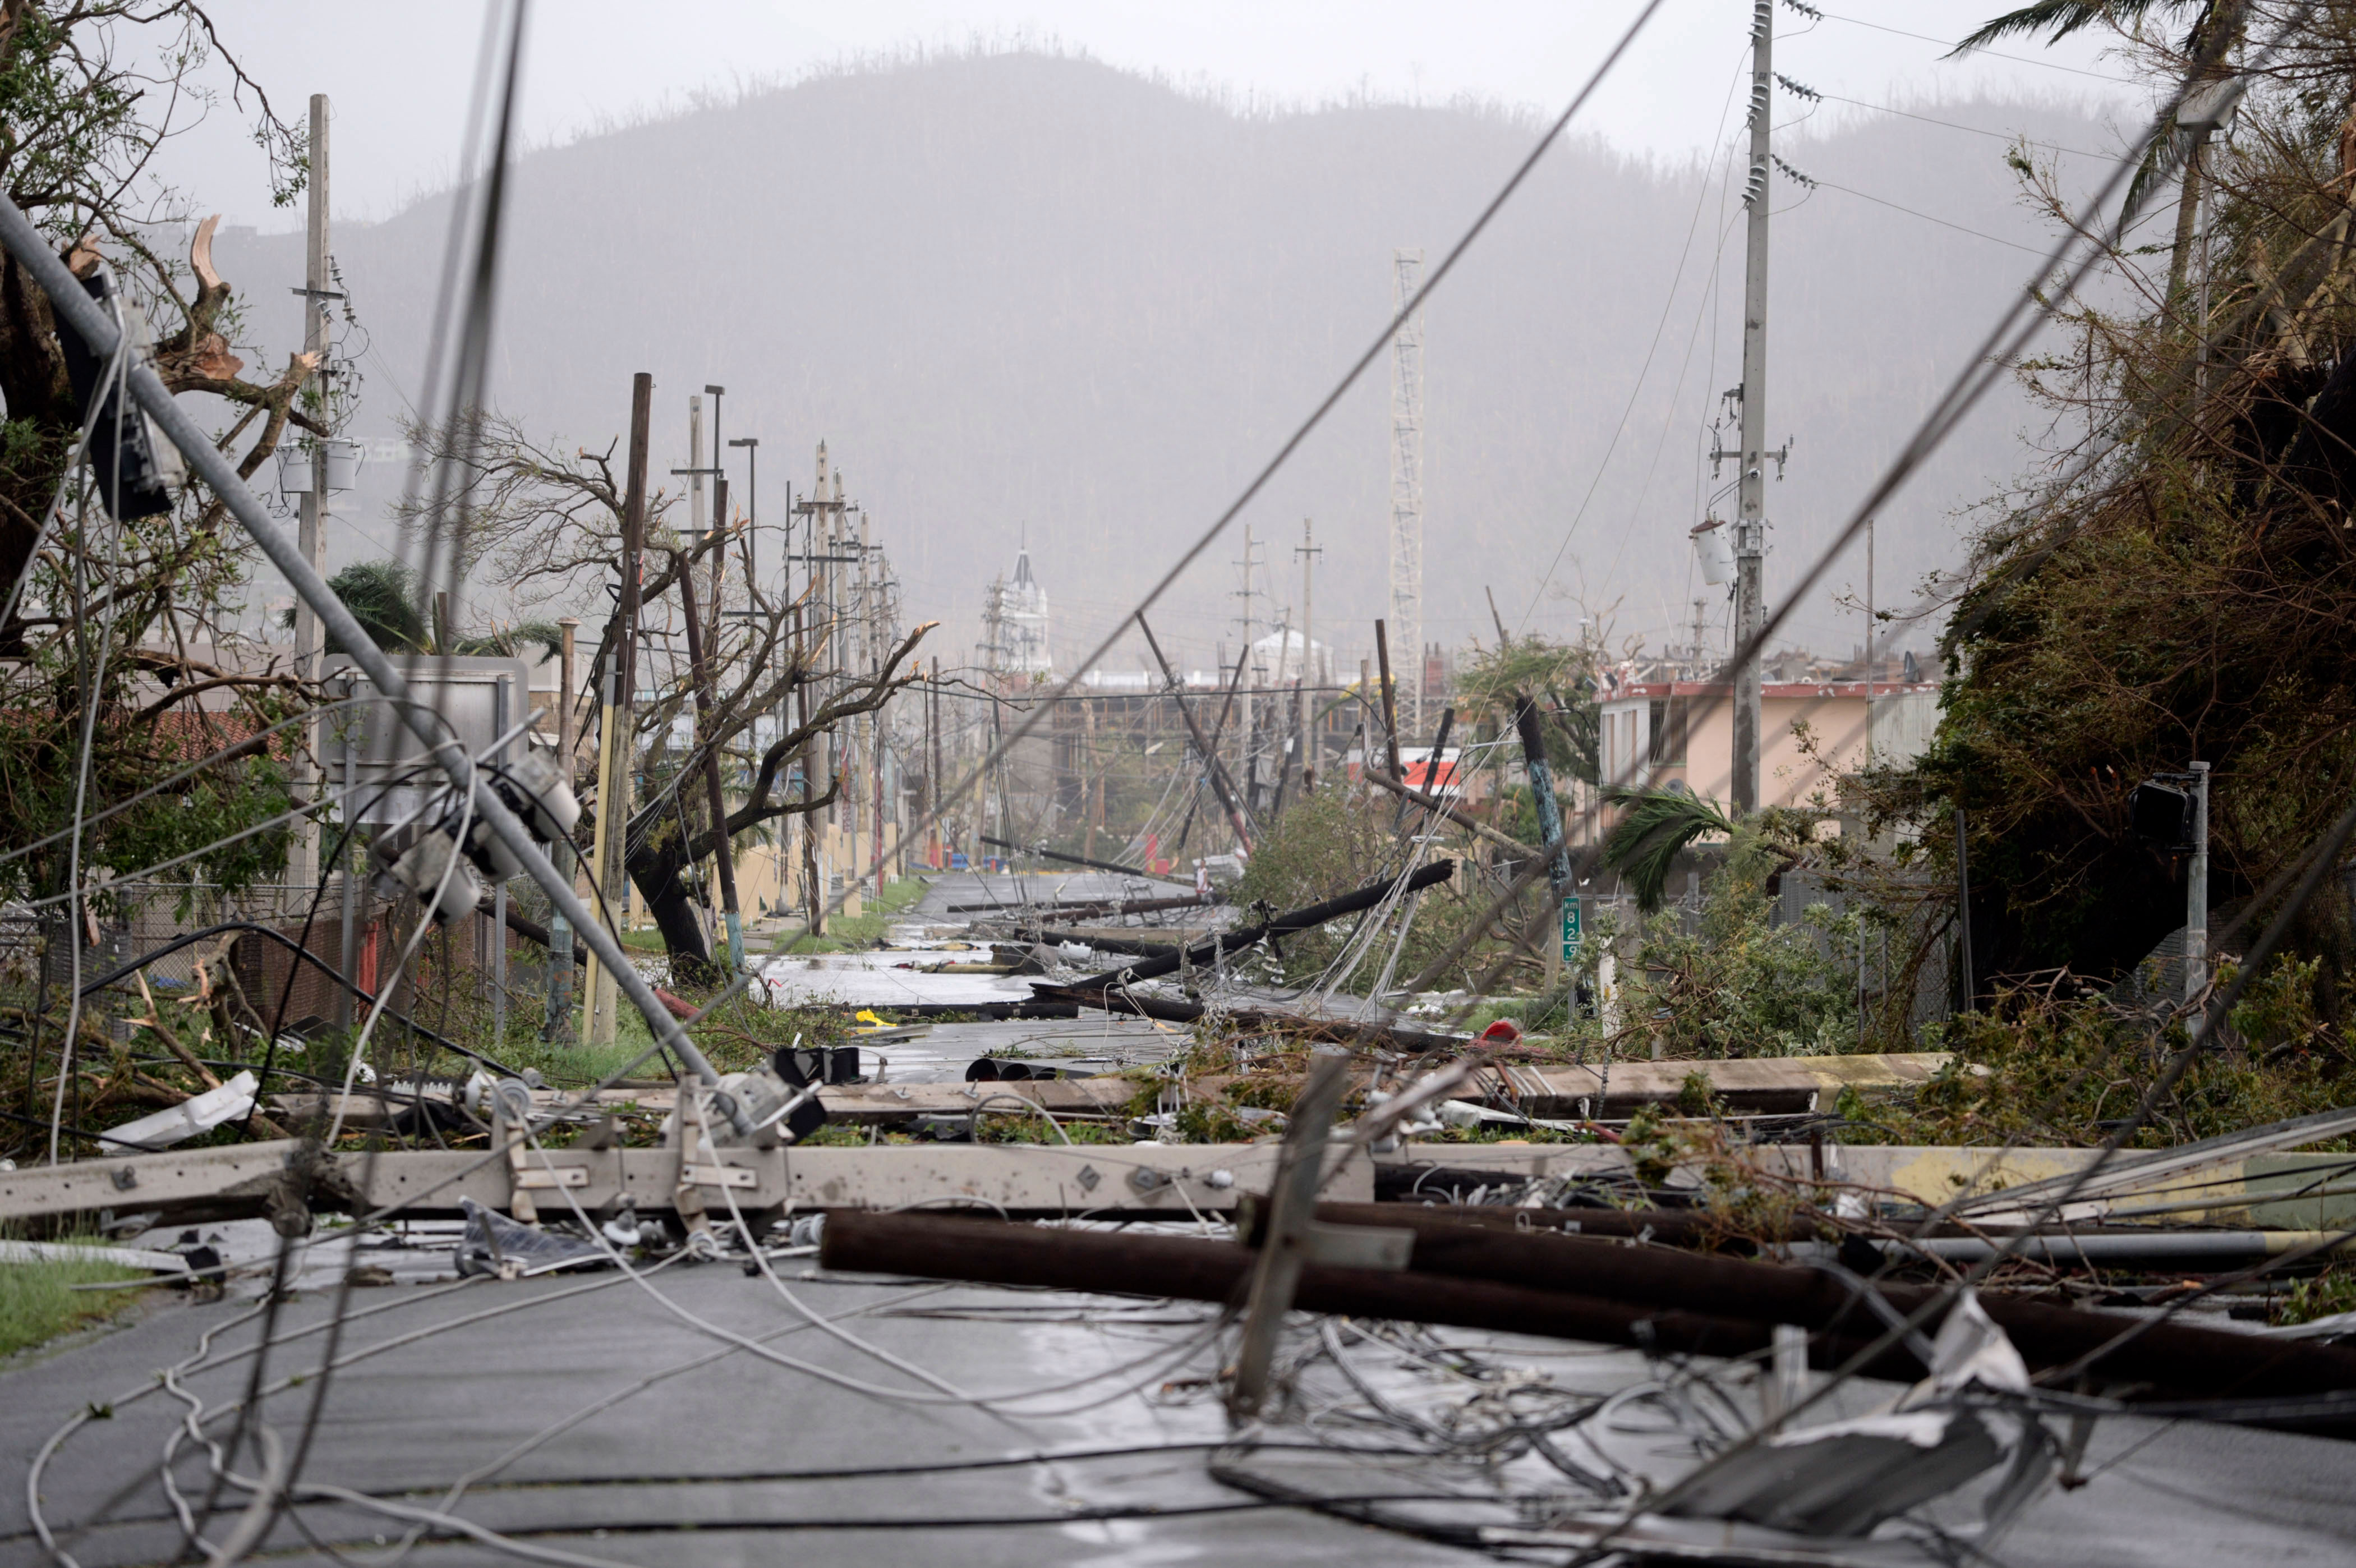 Trump administration hampered investigation into delayed Puerto Rico hurricane relief, government watchdog finds